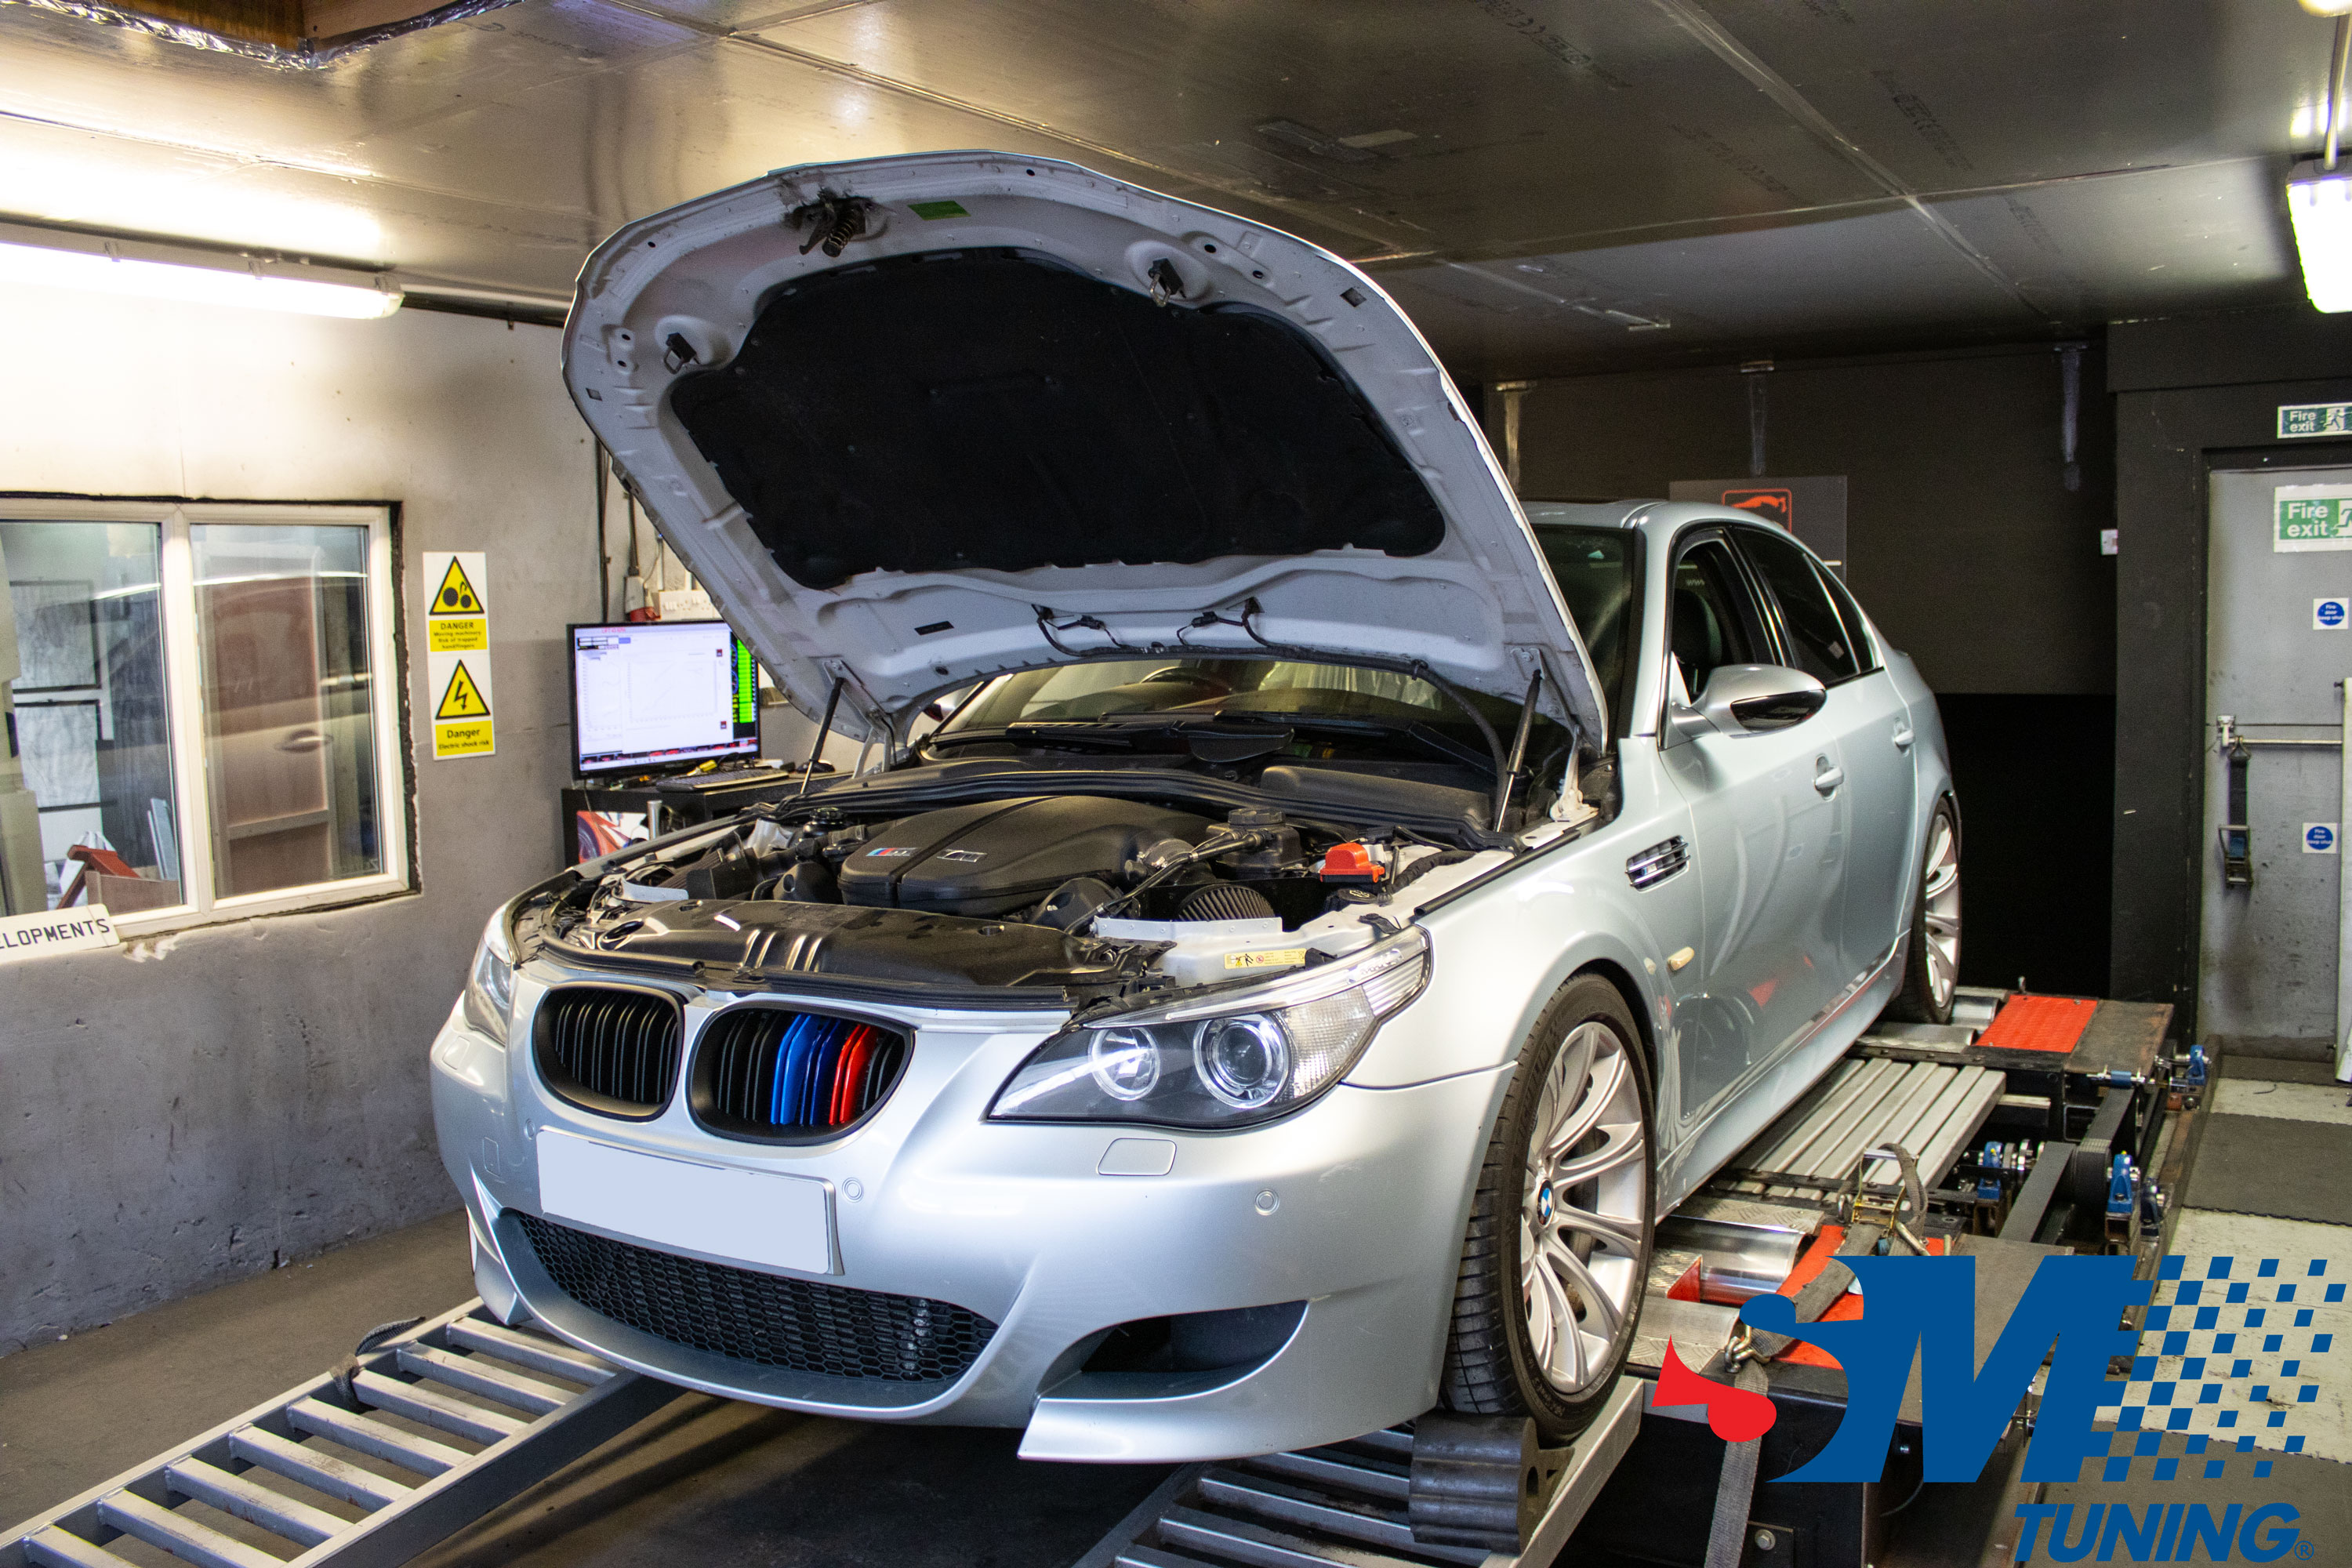 BMW E60 5.0 V10 M5 tuned on the rolling road.